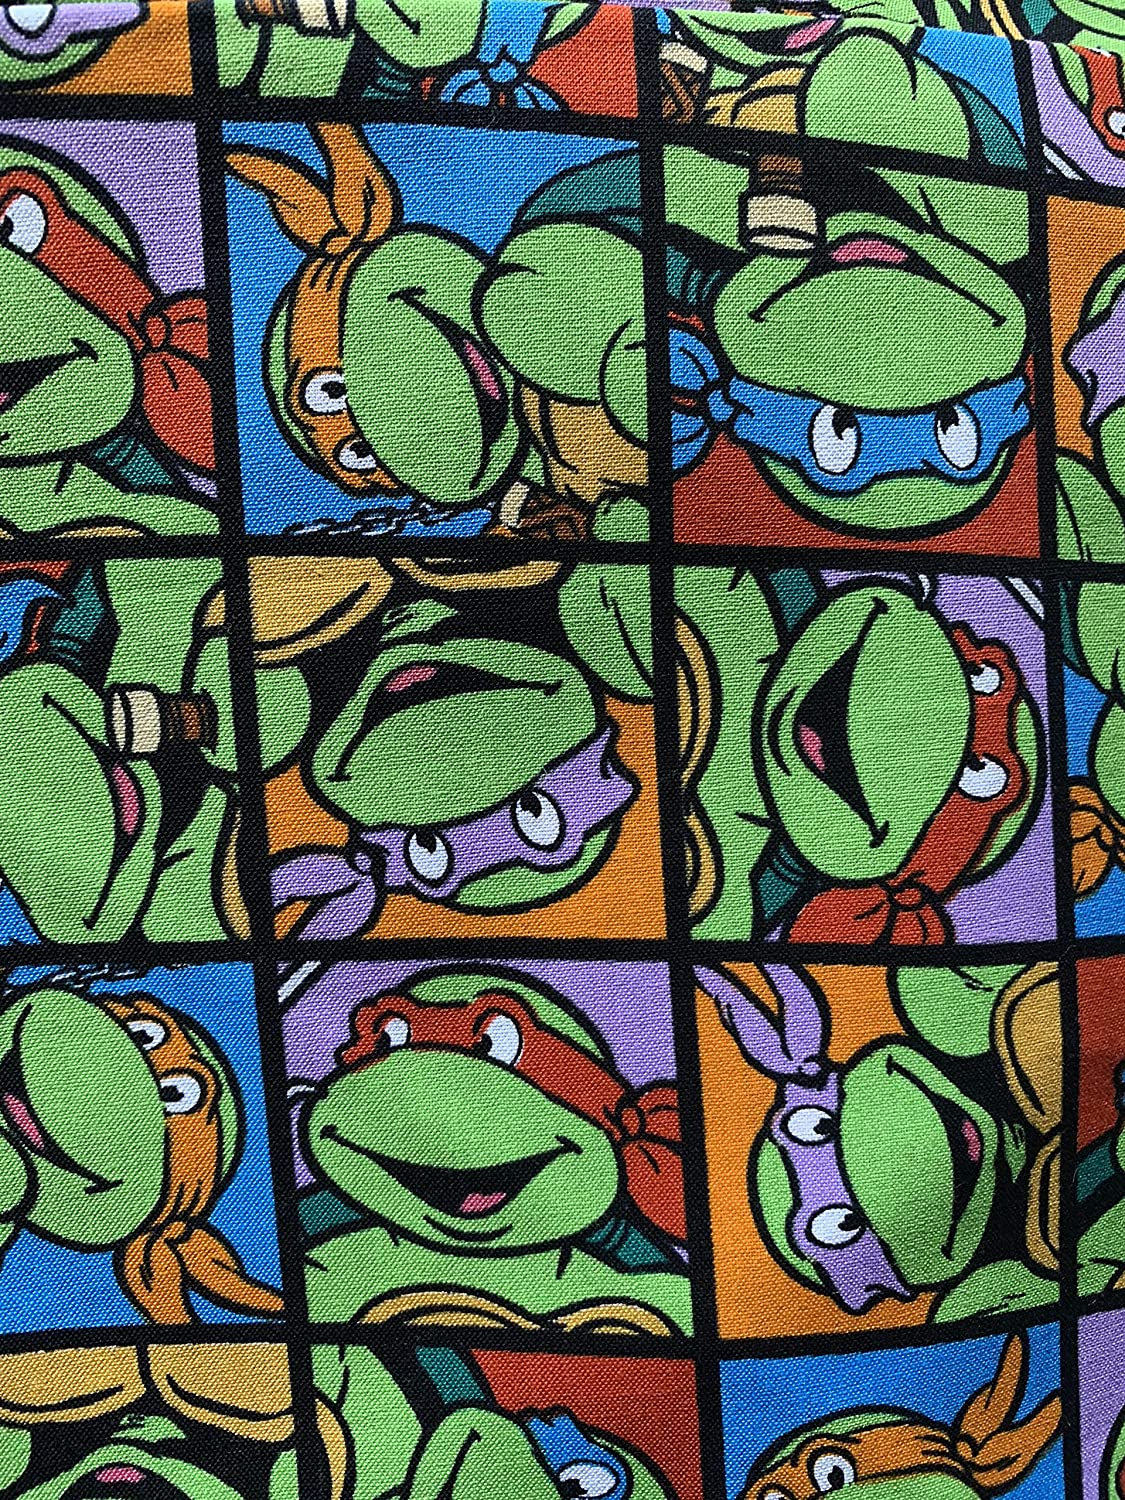 Image of Adult Weighted Blanket twin size Ninja turtles in cotton and flannel with 15 lbs Home and Kitchen